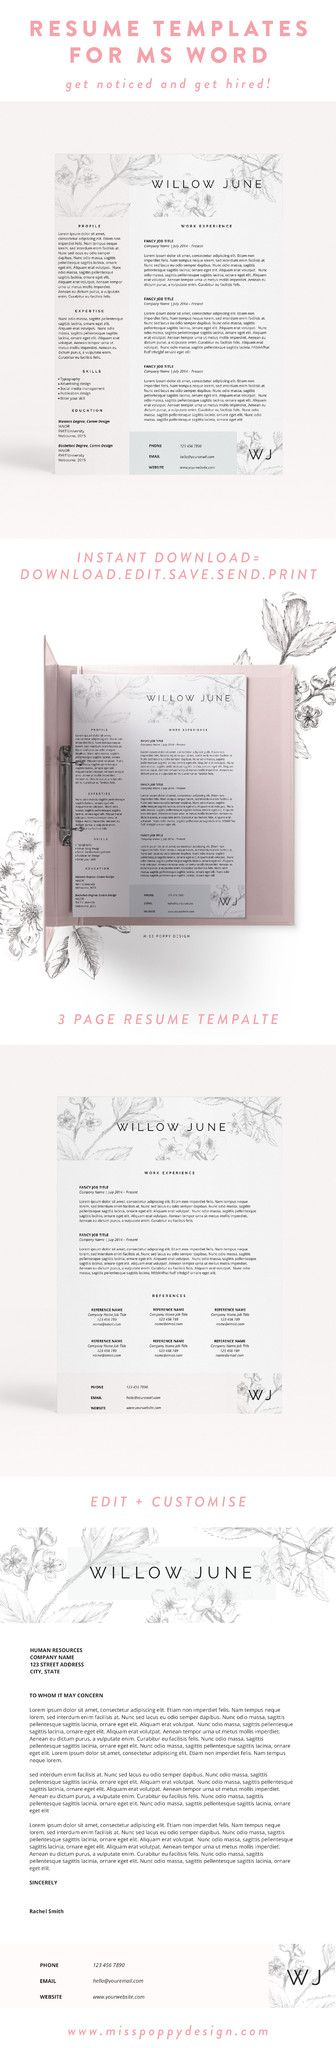 modern creative resume template cv template ms word instant download floral resume - Resume Templates For Ms Word